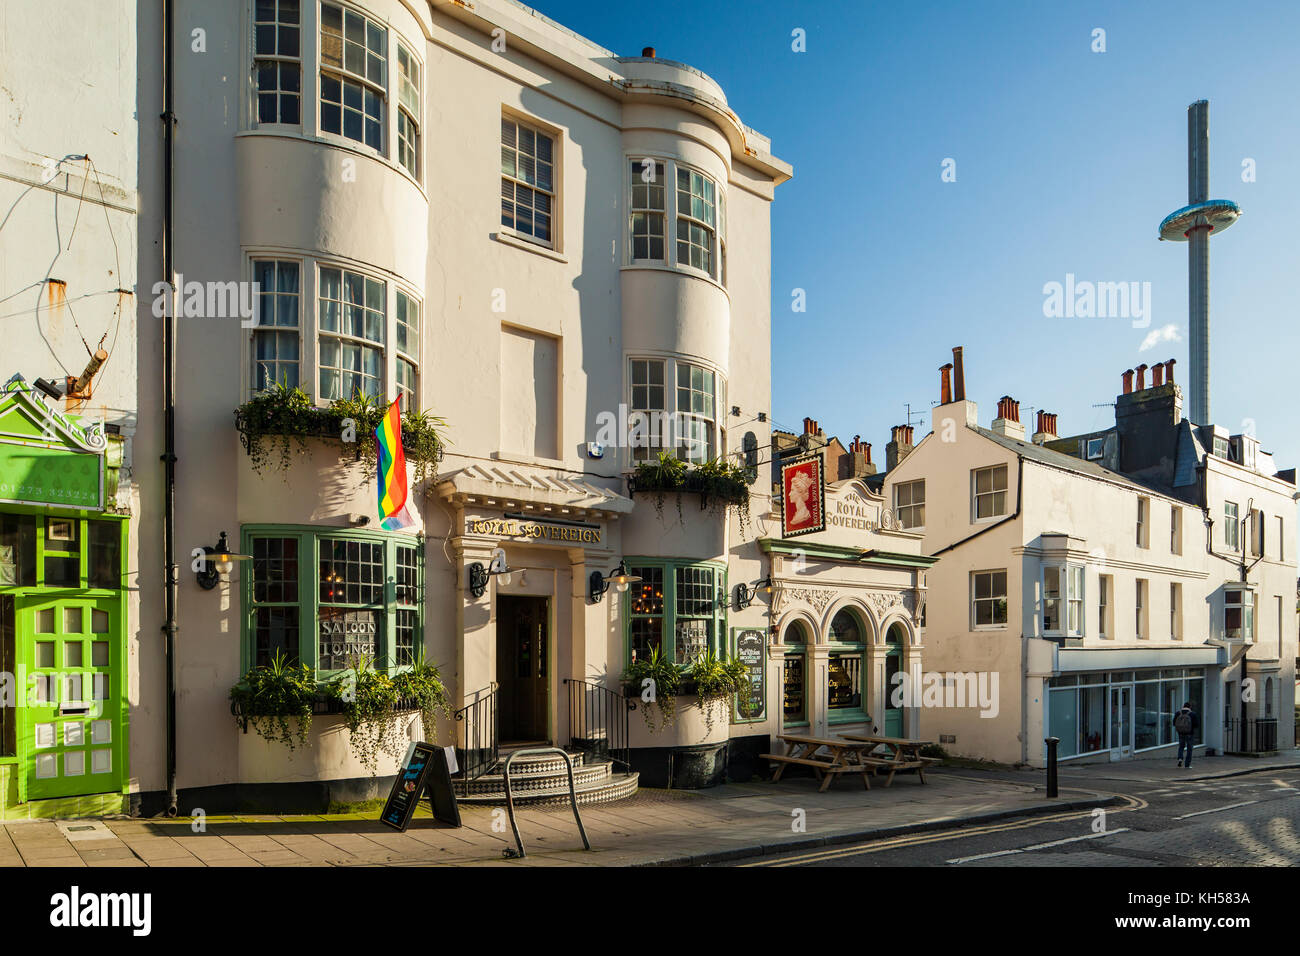 Autumn afternoon in Brighton city centre, East Sussex, England. Stock Photo